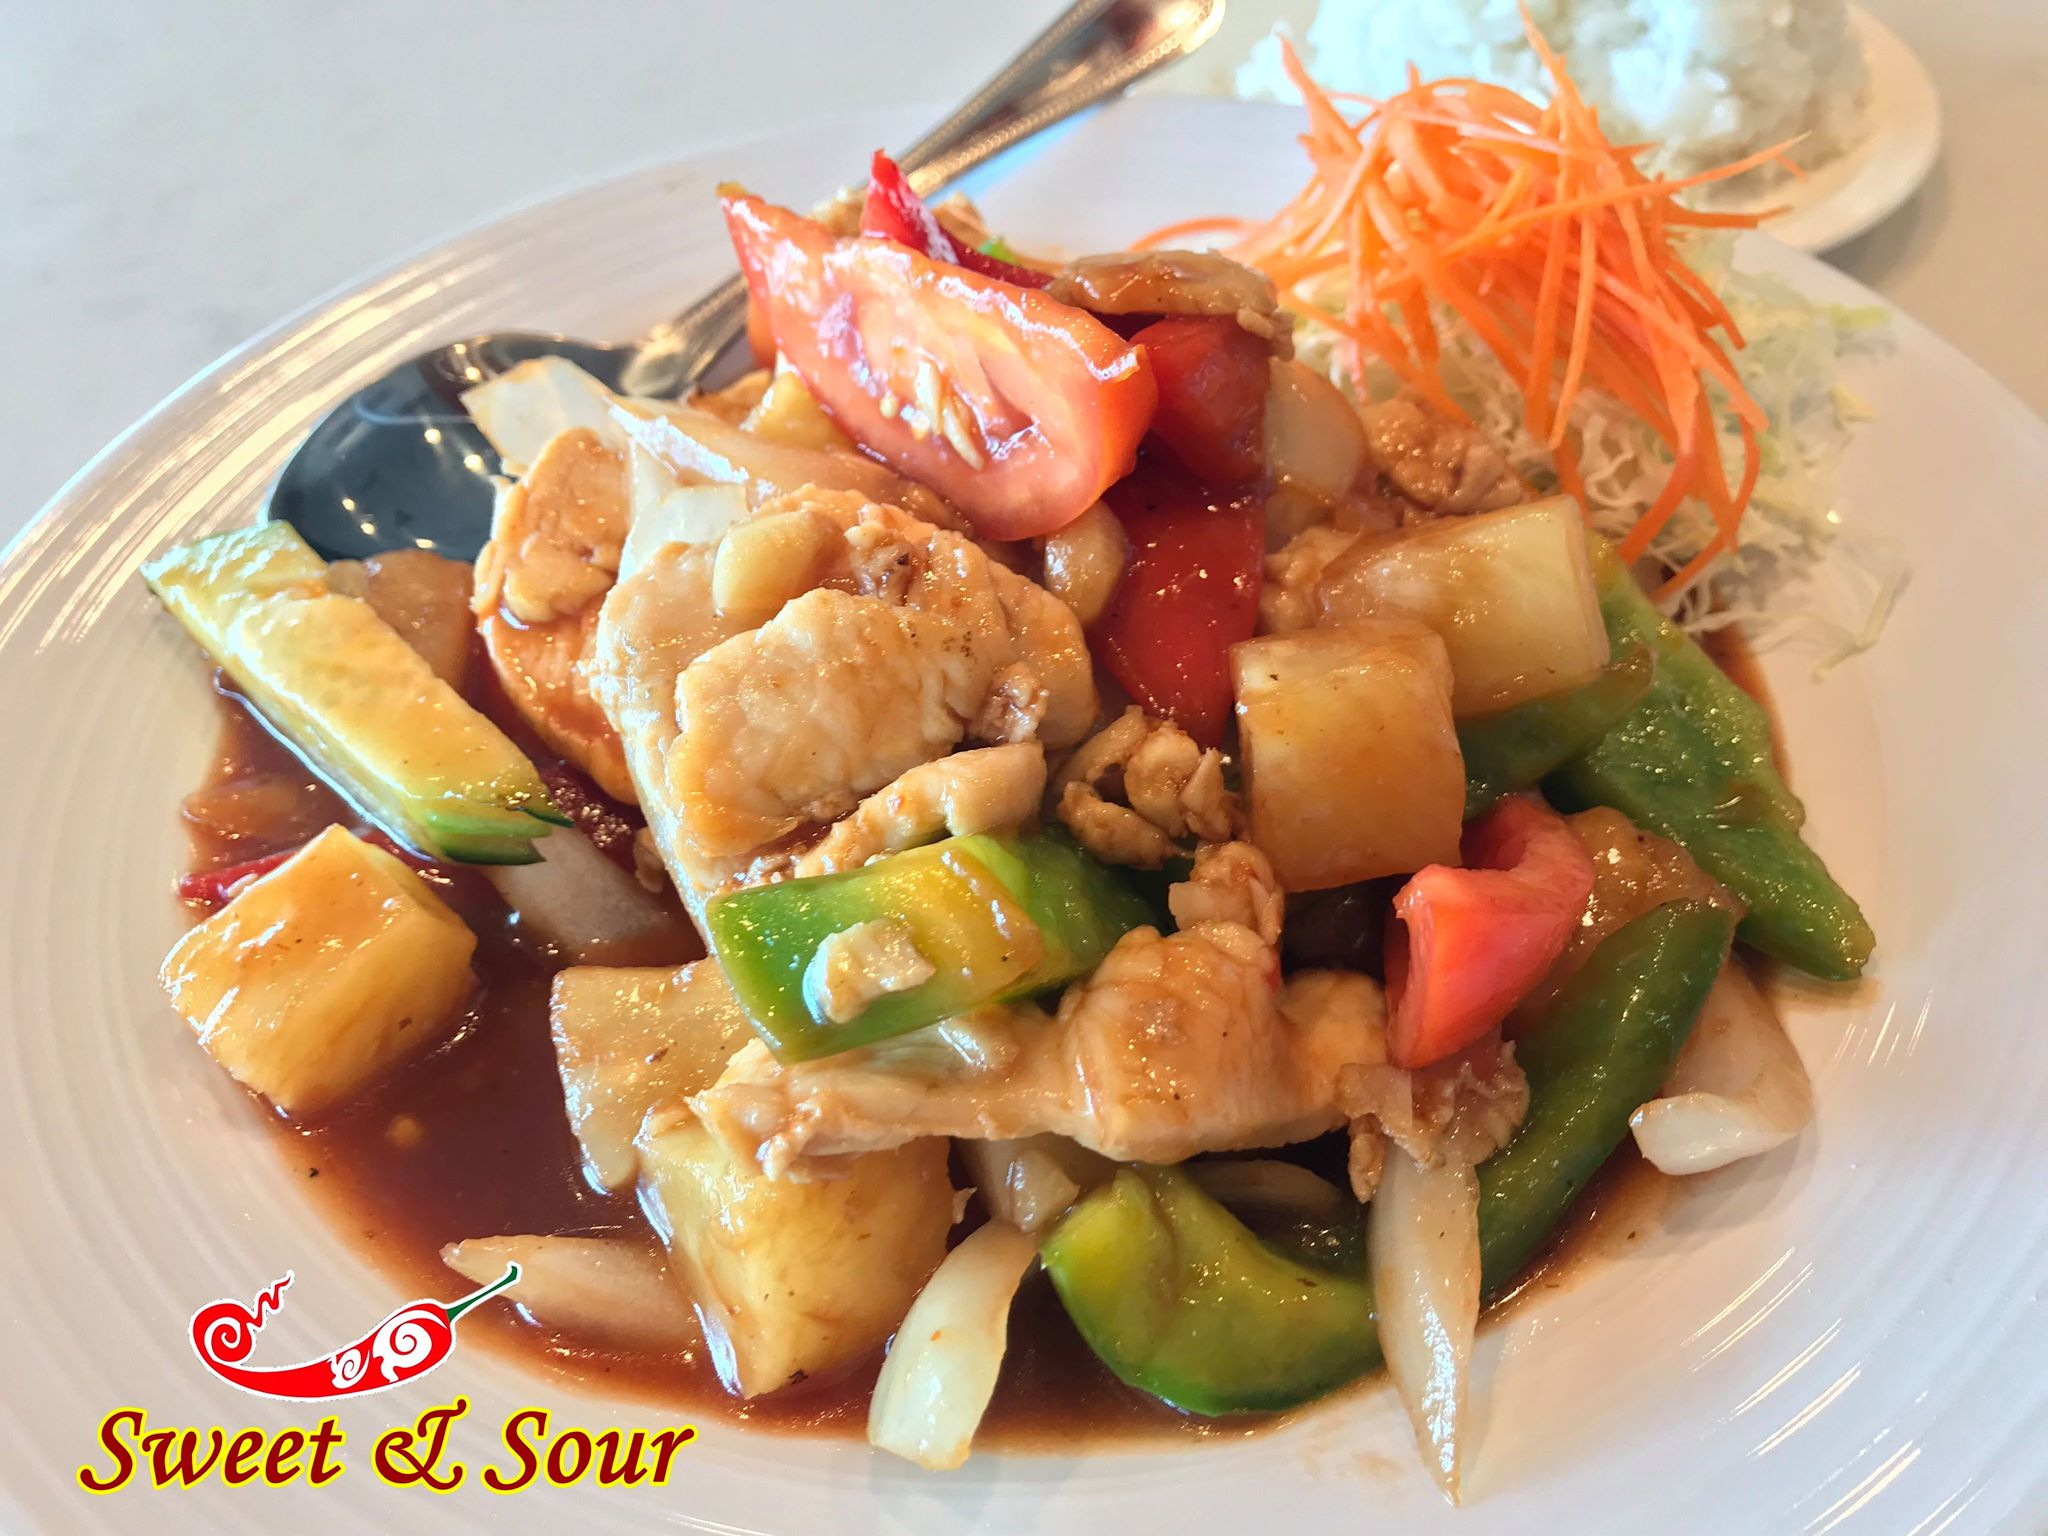 Sweet Sour (Lunch)